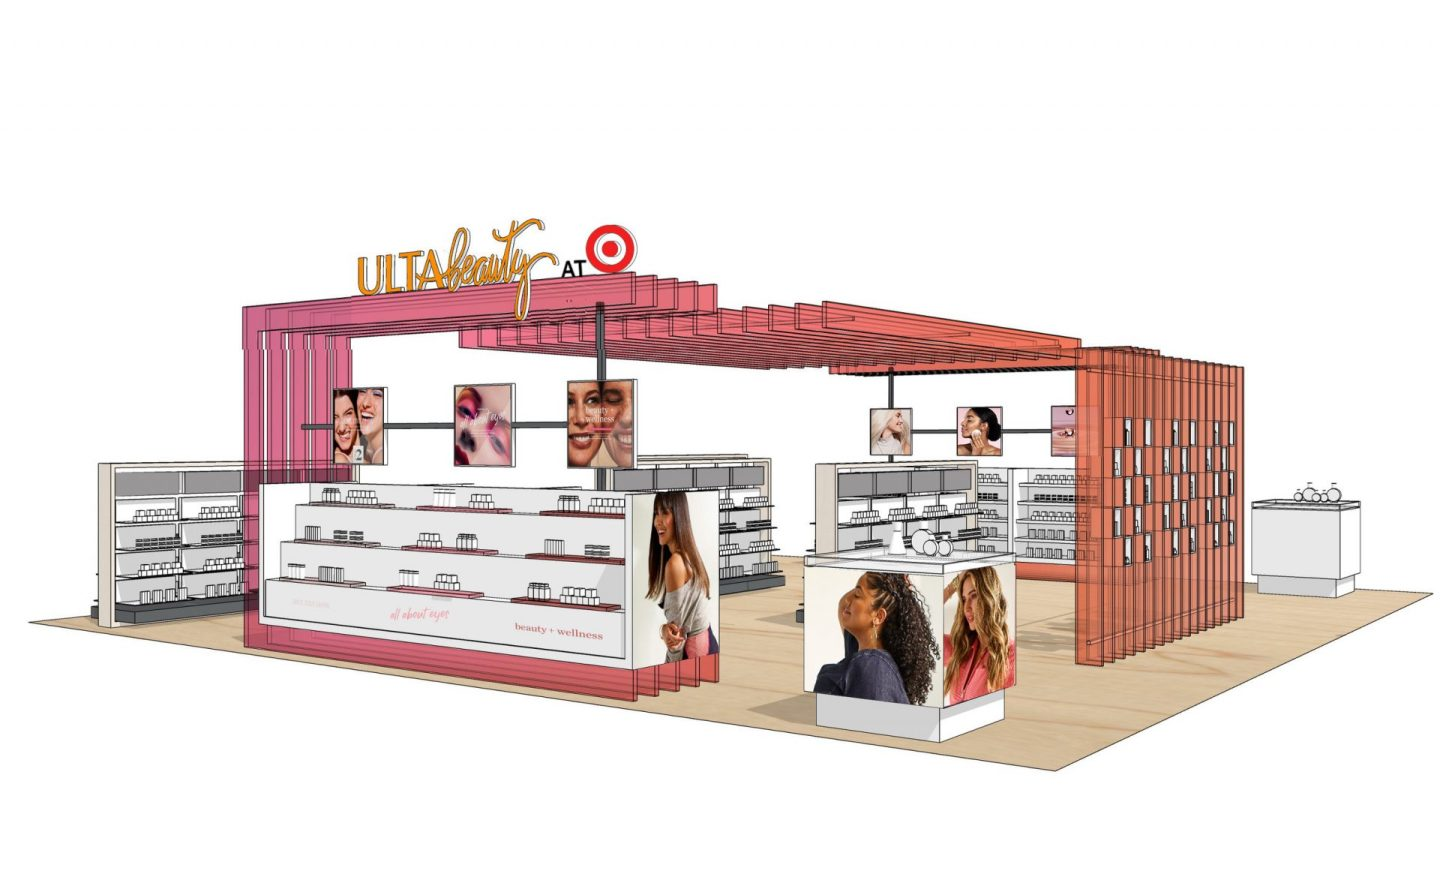 Target Announces 'Ulta Beauty at Target' Coming in 2021